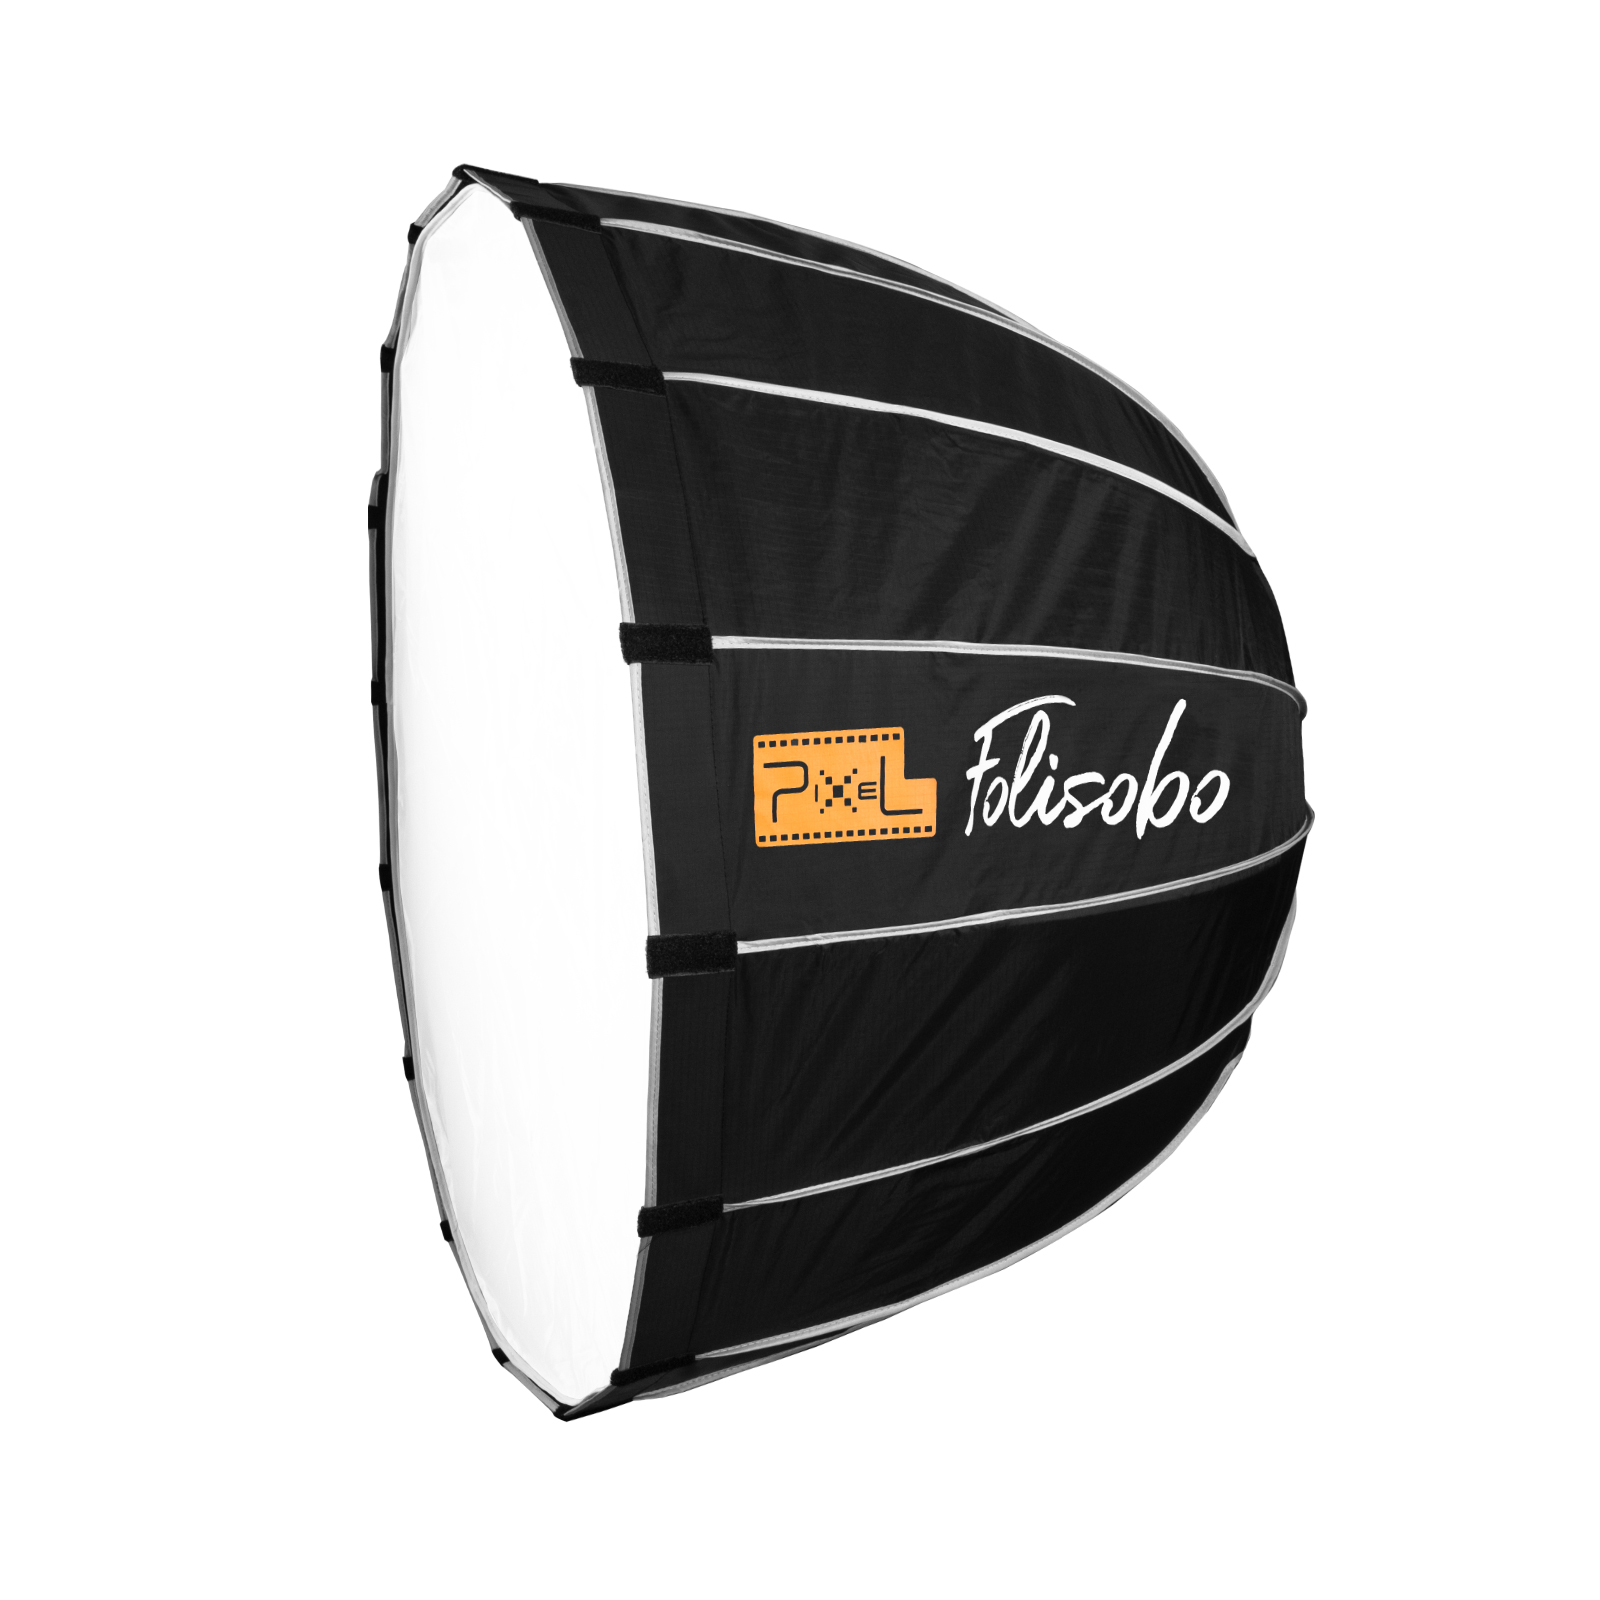 Pixel F60 LED Parabolic Softbox, soft light, delicate and even.